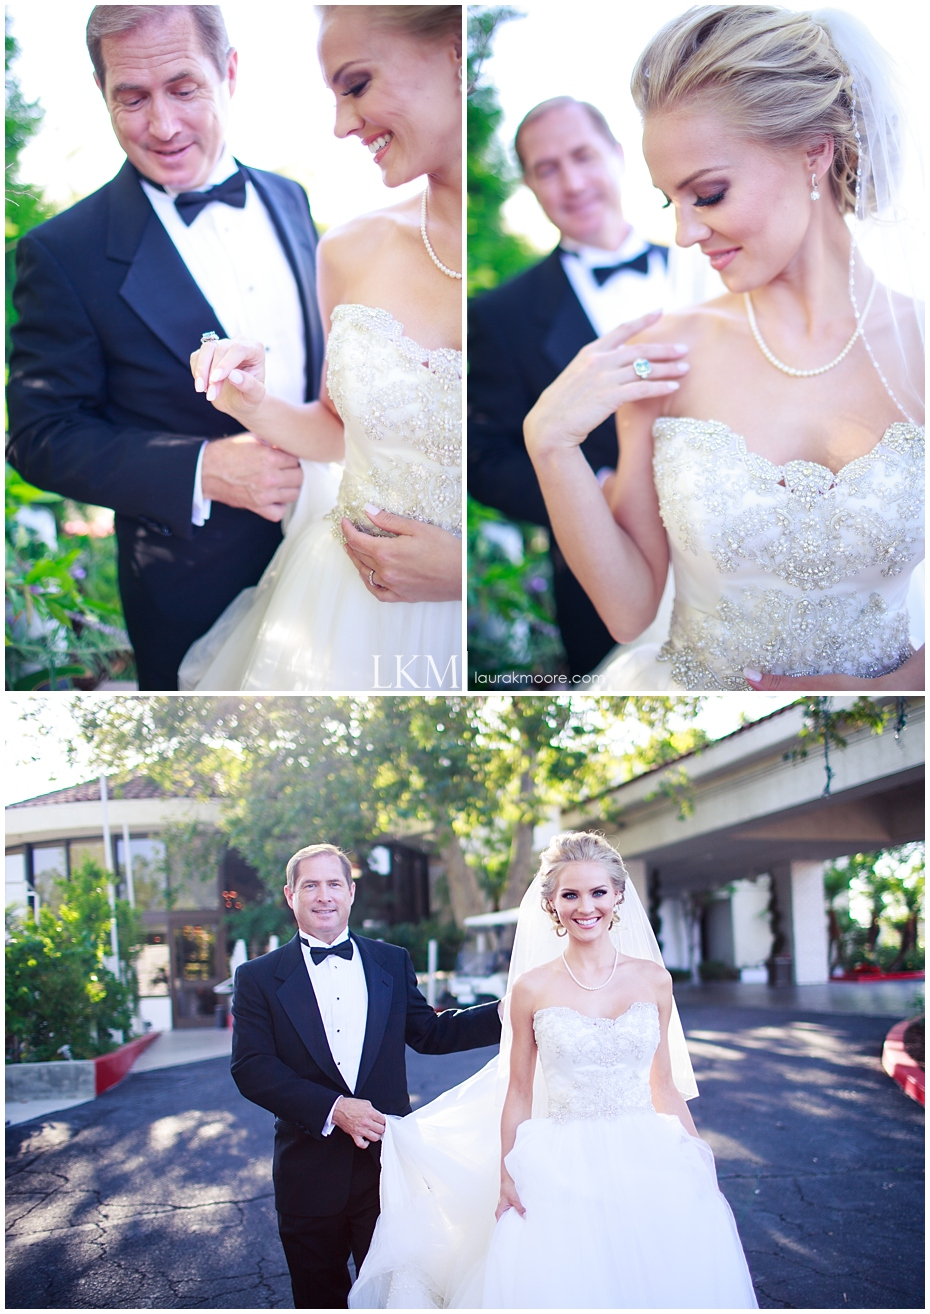 Kristen-Dalton-Celebrity-Wedding-Photography-The-Vineyards-Simi-Valley_0074.jpg